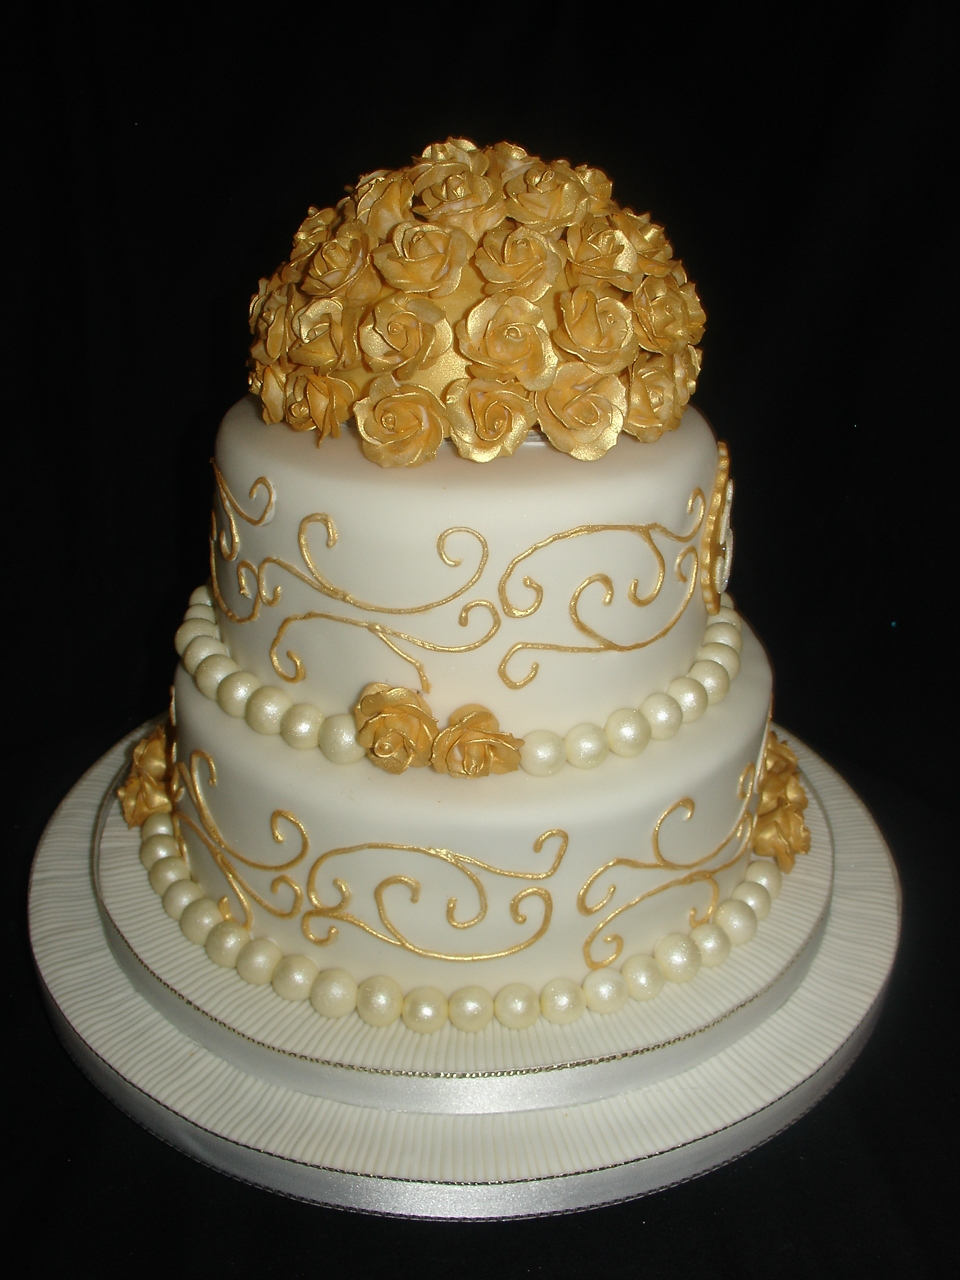 Golden Wedding Anniversary Cakes Images